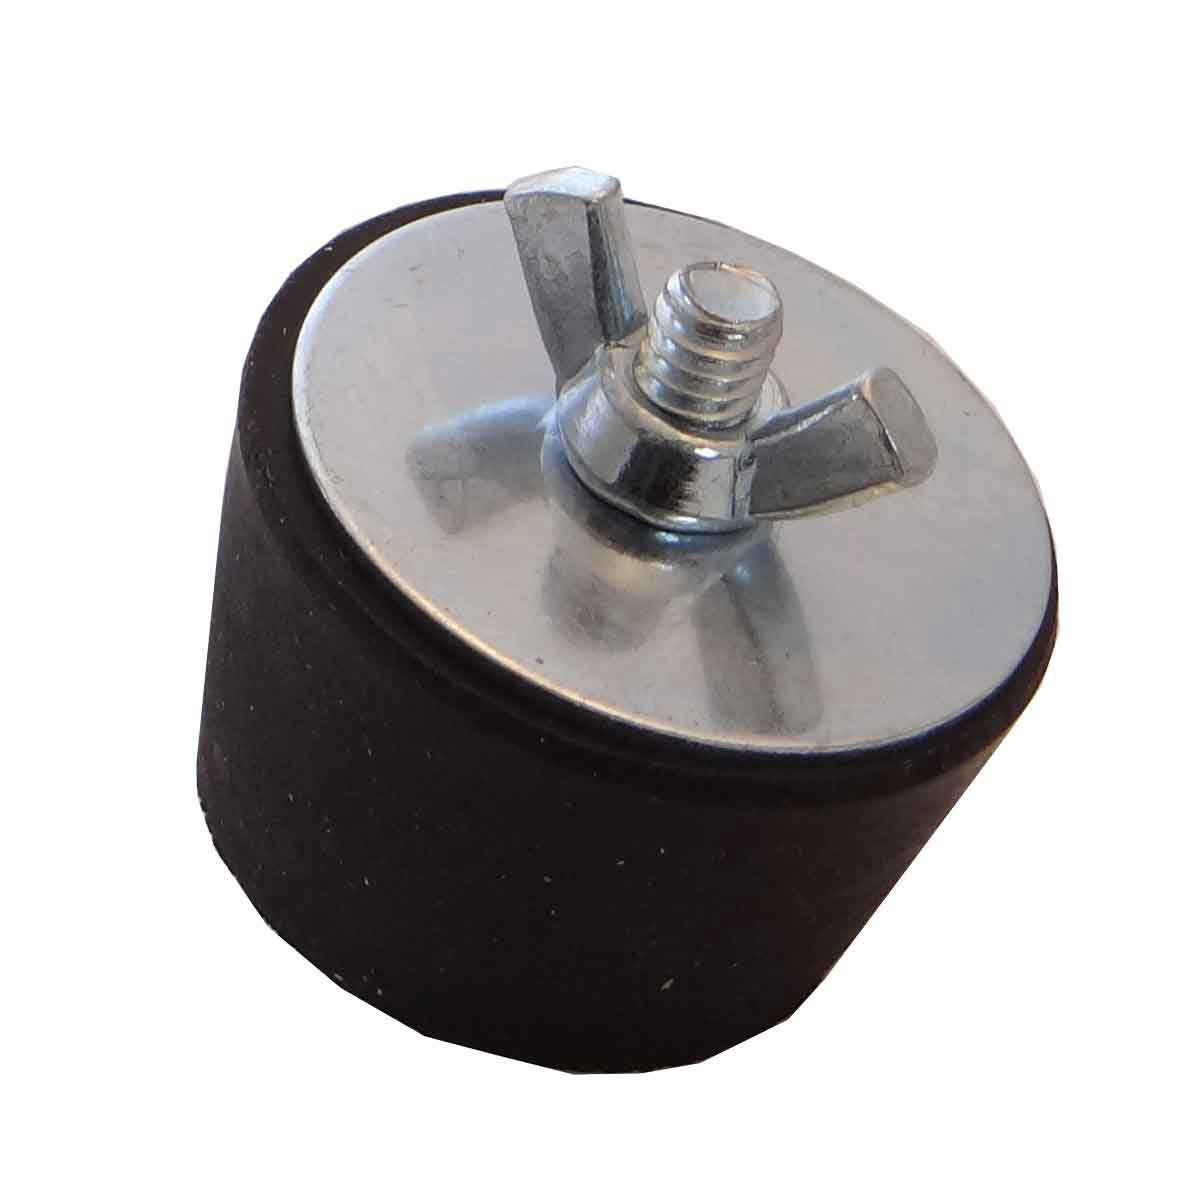 542030386 rubber drain plug for tile saw water pans